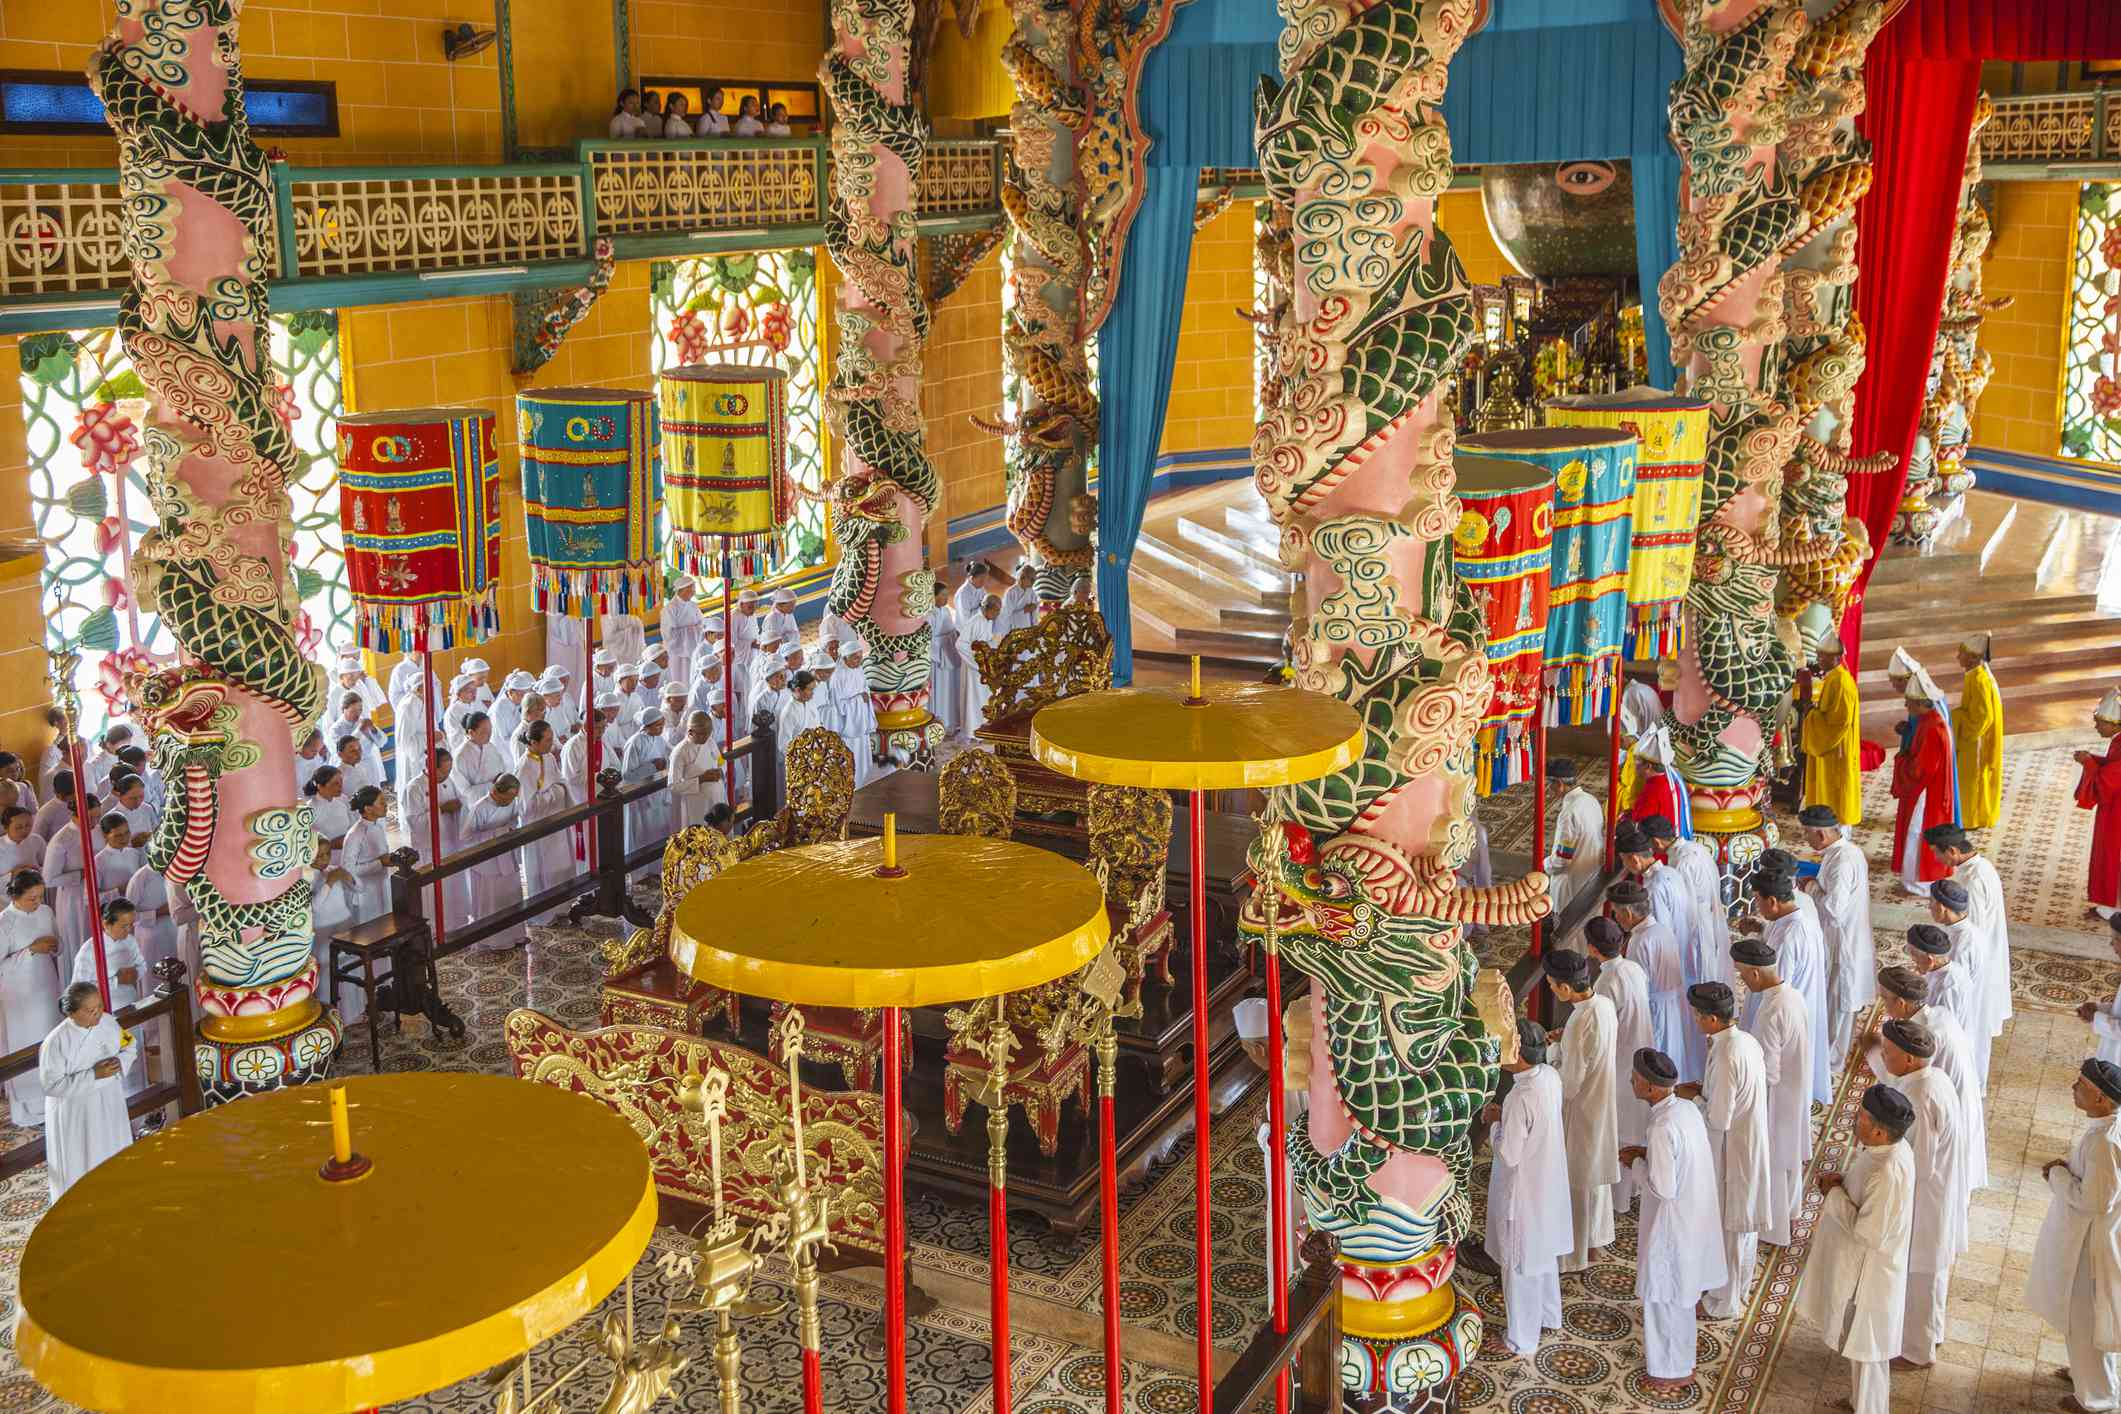 people dressed in while prageing inside an ornately decorated vietnamese temple